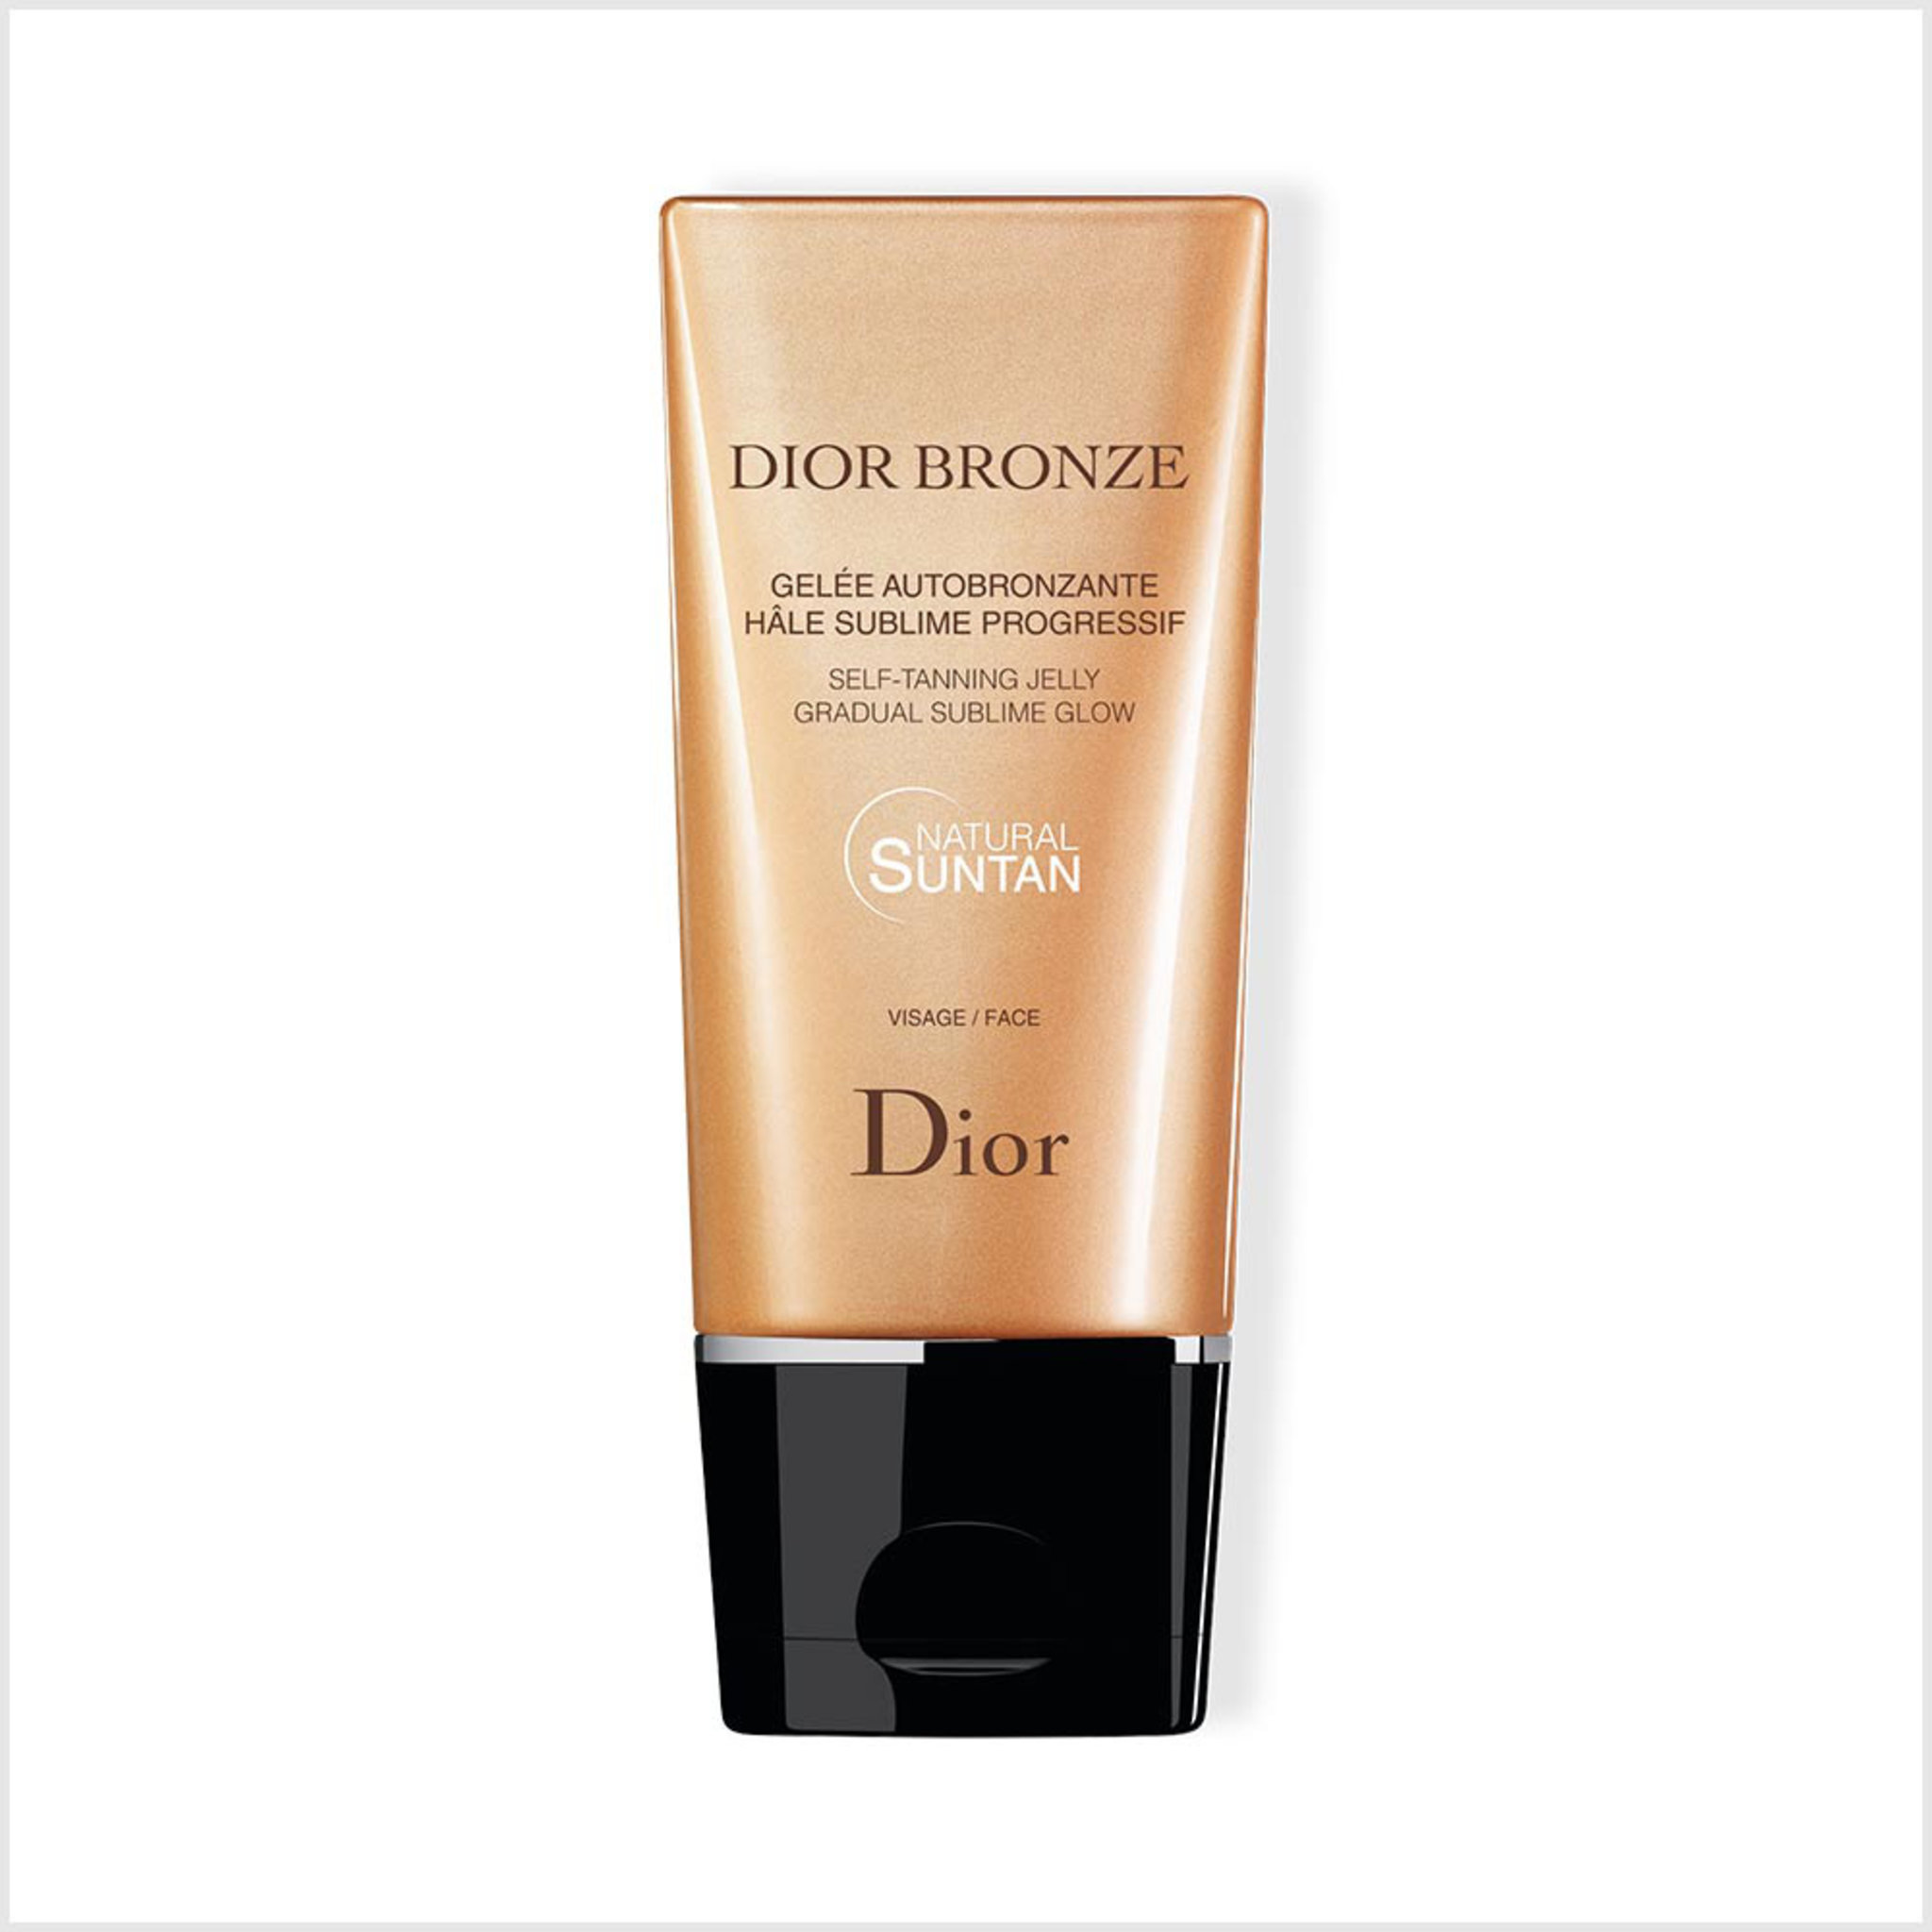 Dior Bronze Self Tanning Jelly Face, 50 ML